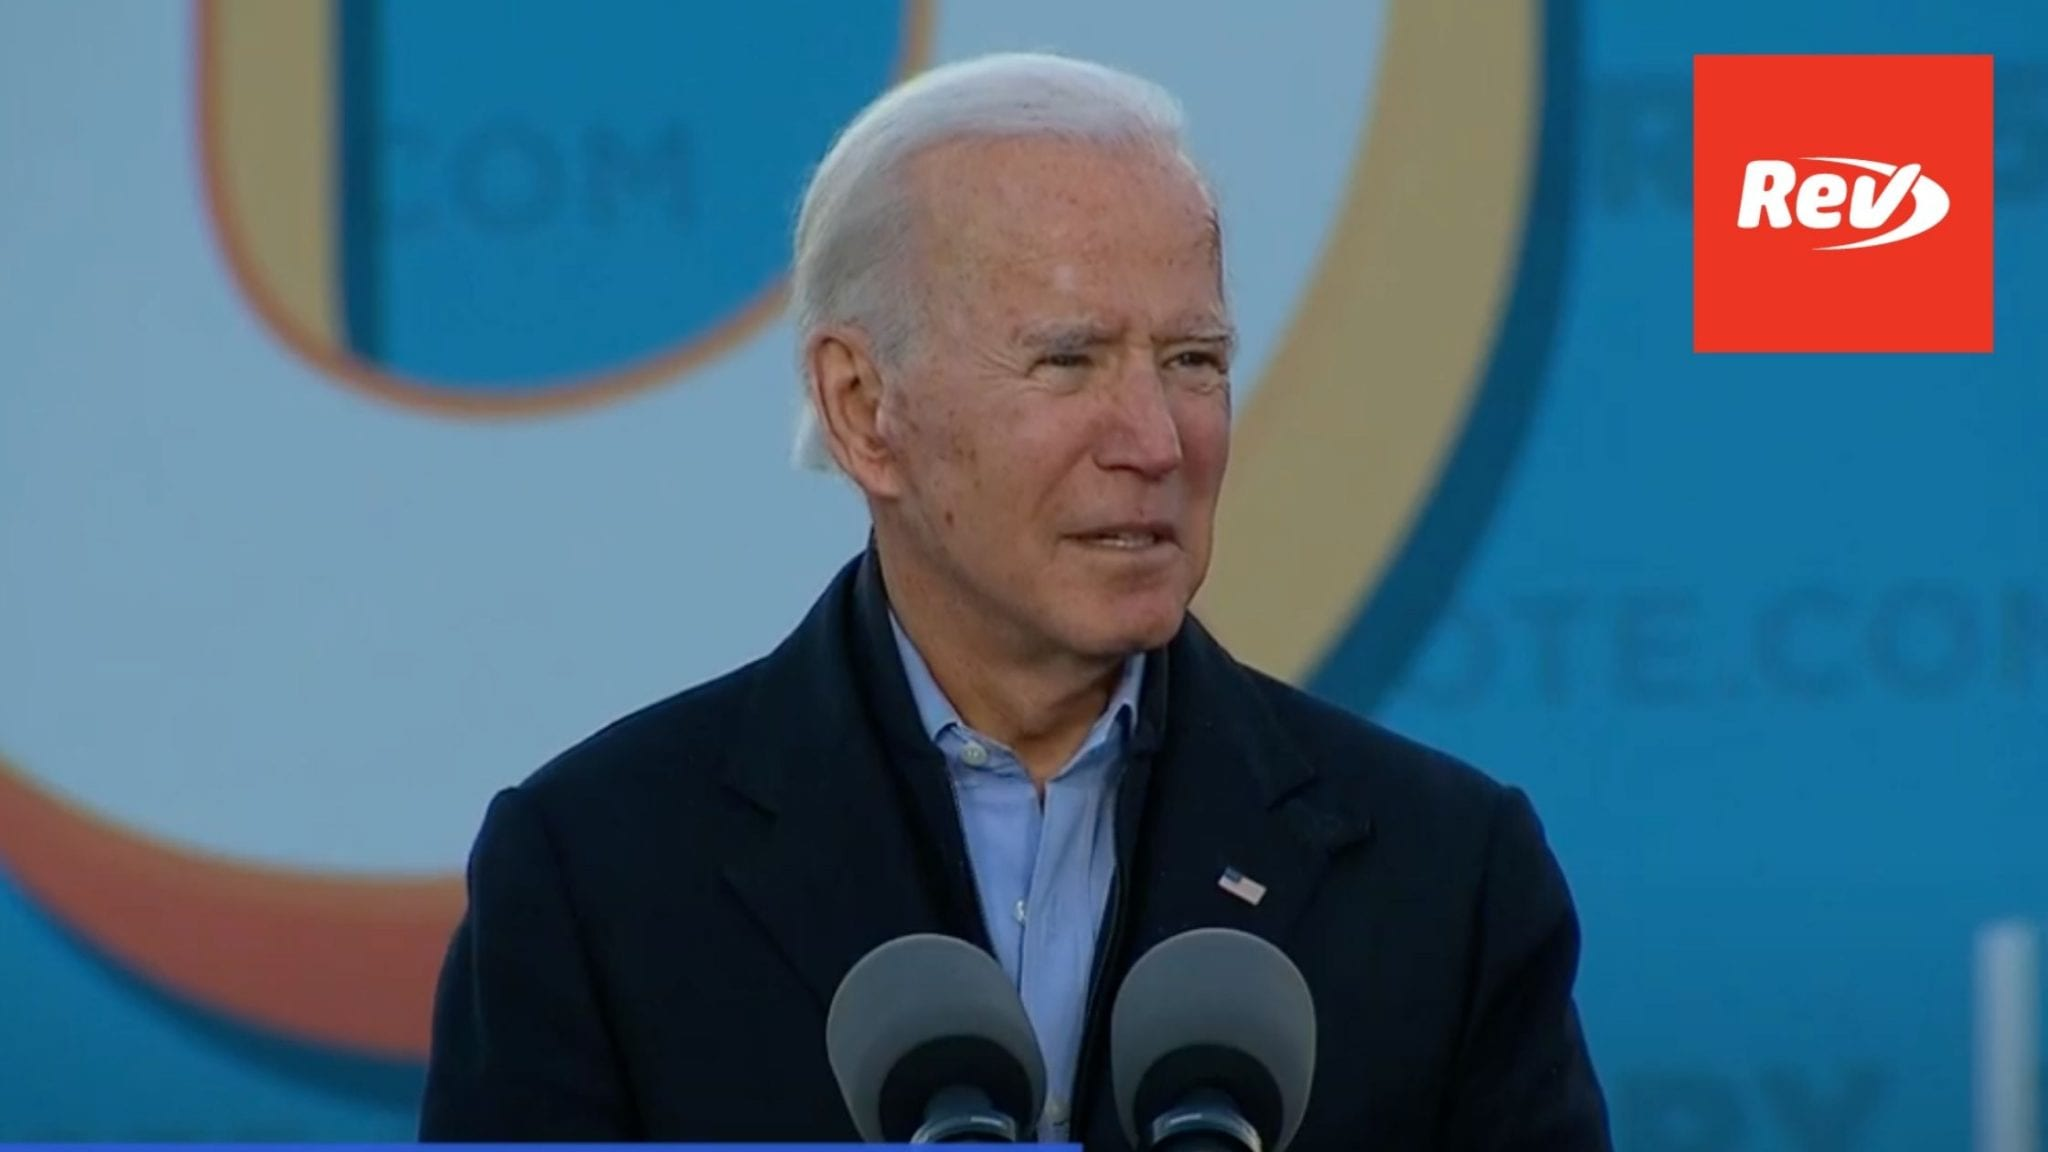 Georgia Runoff Election Democrat Rally Transcript: Joe Biden, Raphael Warnock, Jon Ossoff